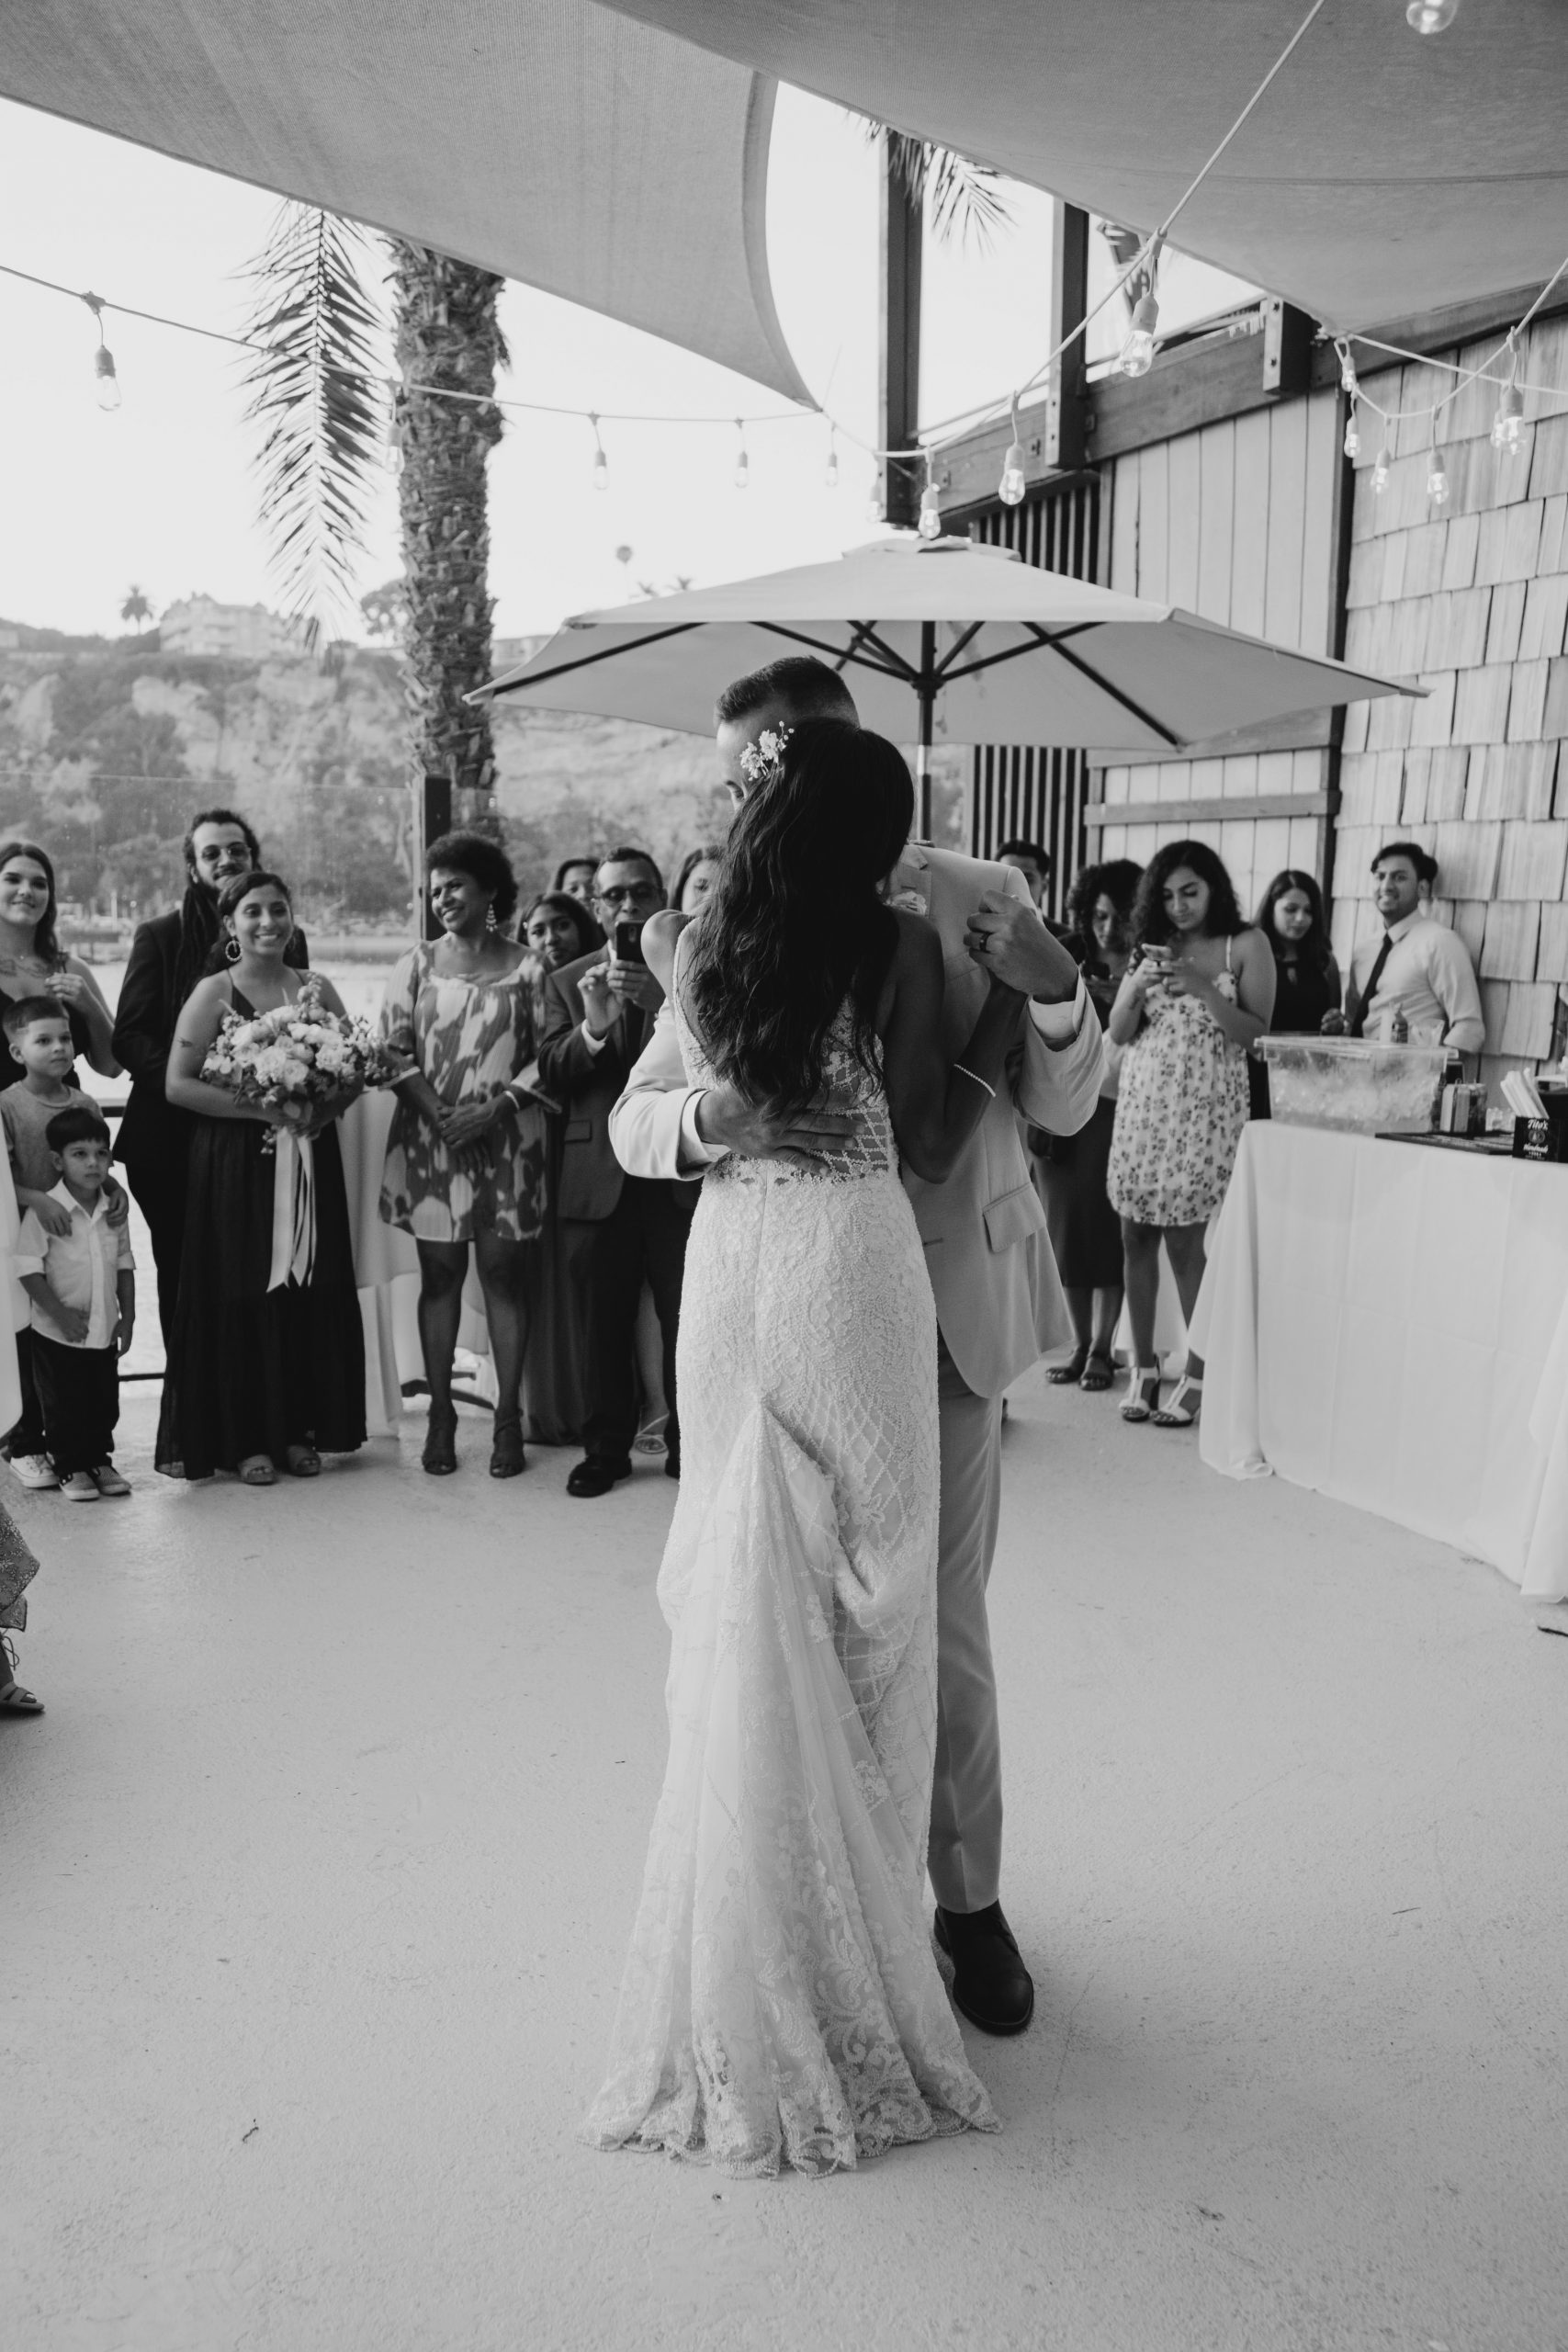 First dance as bride and groom, image by Fatima Elreda Photo